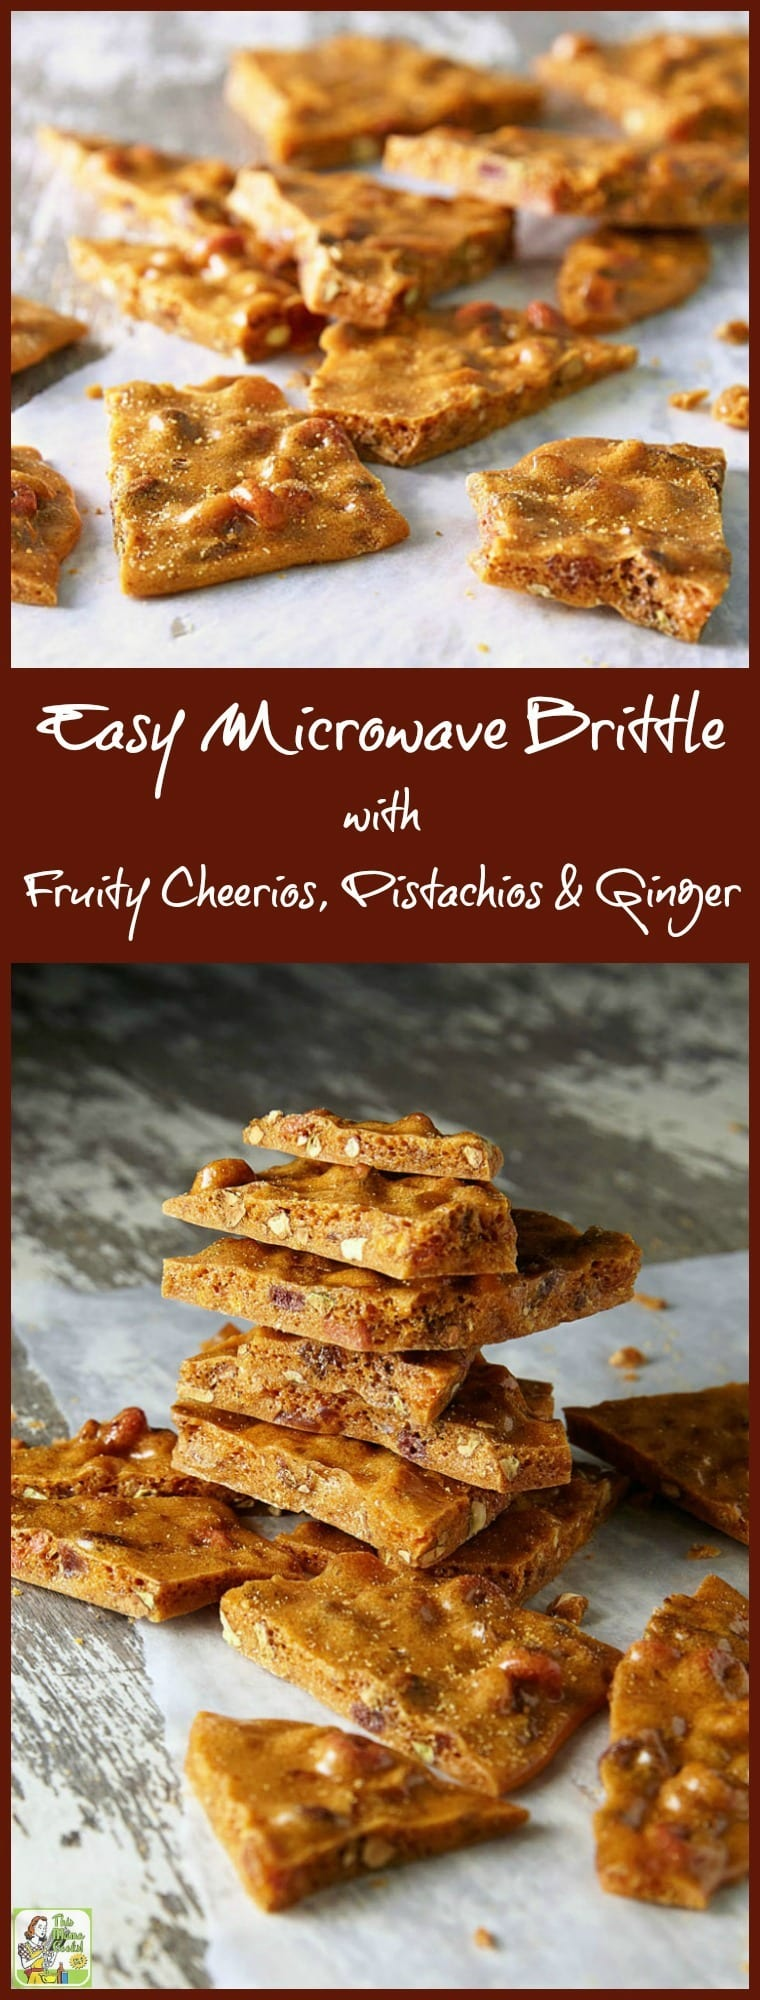 How to make Easy Microwave Brittle. Make Easy Microwave Brittle as a homemade holiday gift. This microwave brittle recipe is also terrific to use for Christmas cookie exchanges. Microwave brittle recipes take the hassle out of brittle making! This unique brittle recipe contains gluten free Fruity Cheerios, pistachios, candied ginger, cinnamon, and grated some orange peel.  #candy #holiday #Christmas #homemadegifts #cookieexchange  #cookieswap #glutenfree #brittle #pistachios #ginger